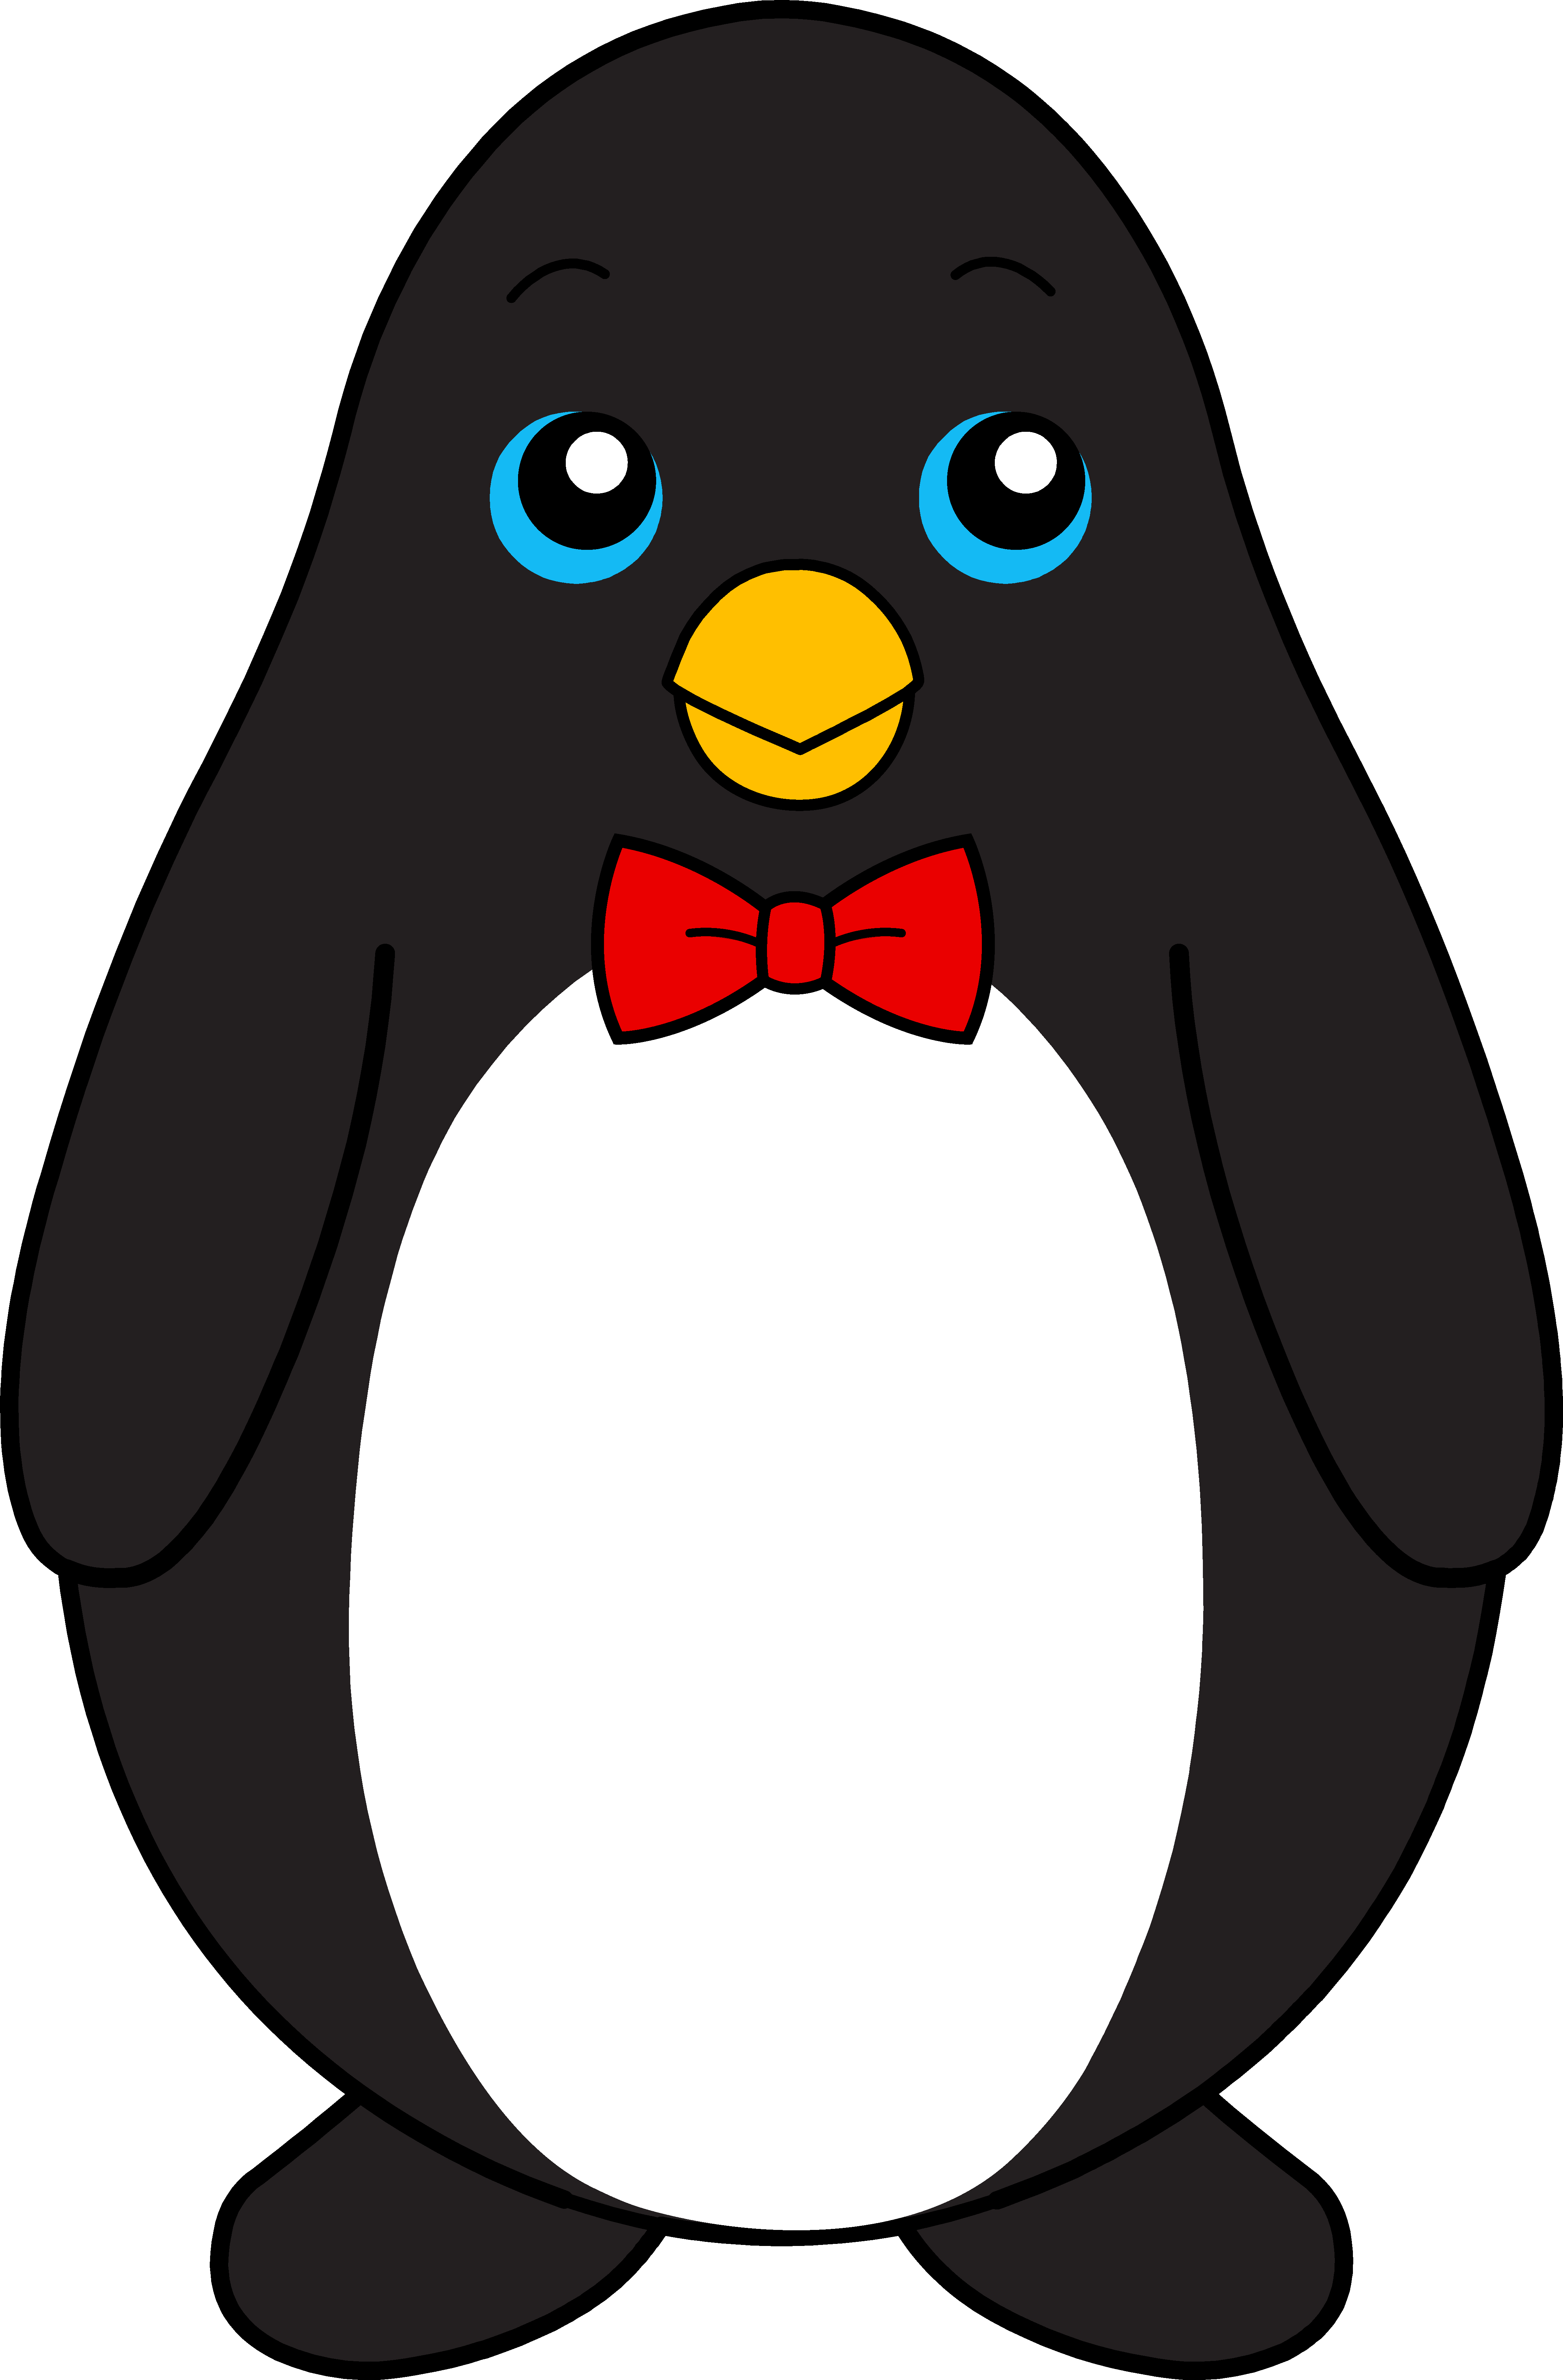 Mask clipart penguin. Cute black with red